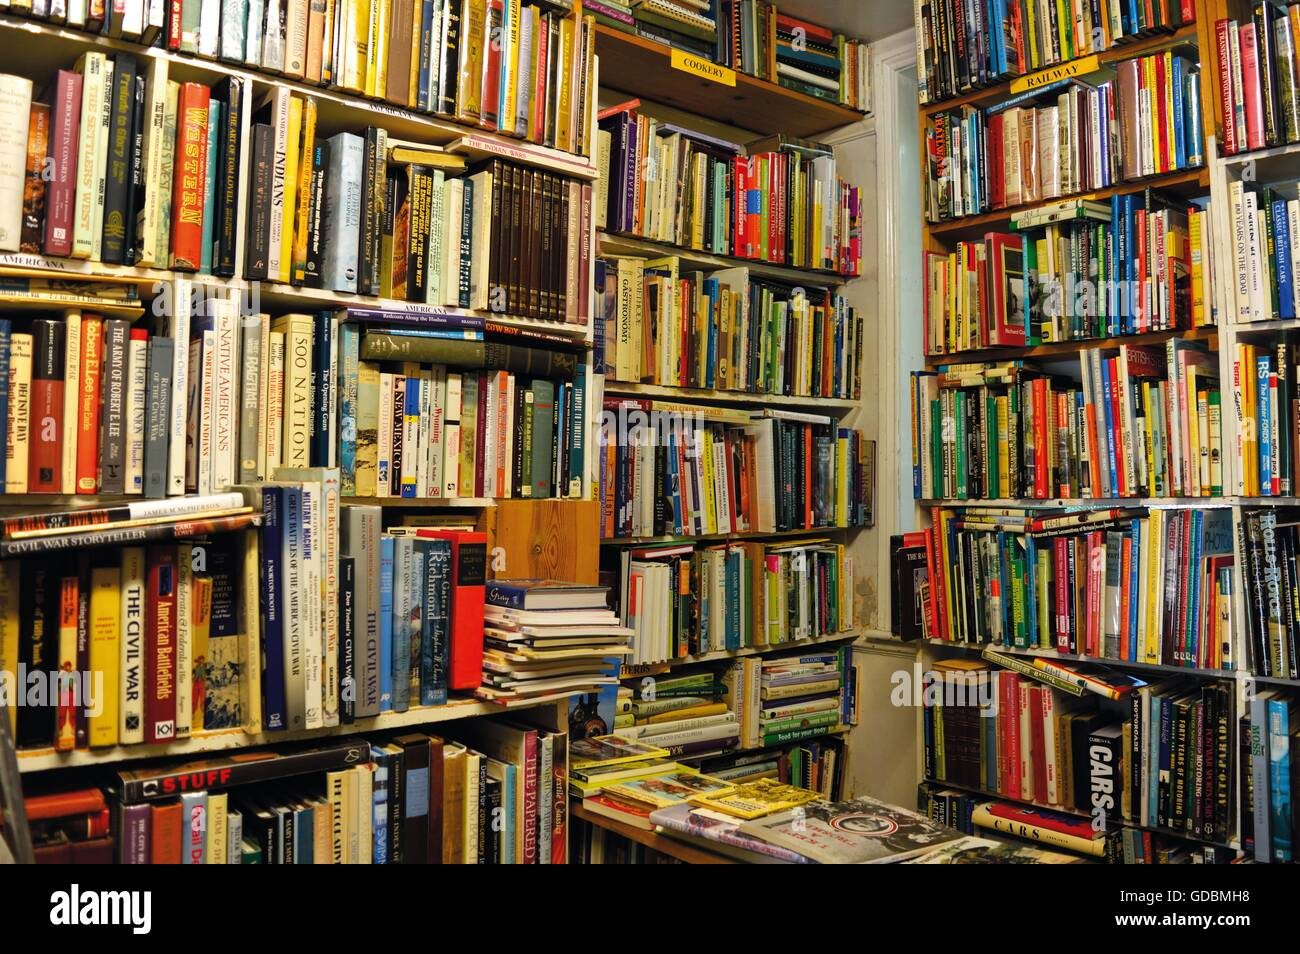 Lots of Books, Books on the Shelfs, Bookstore. - Stock Image